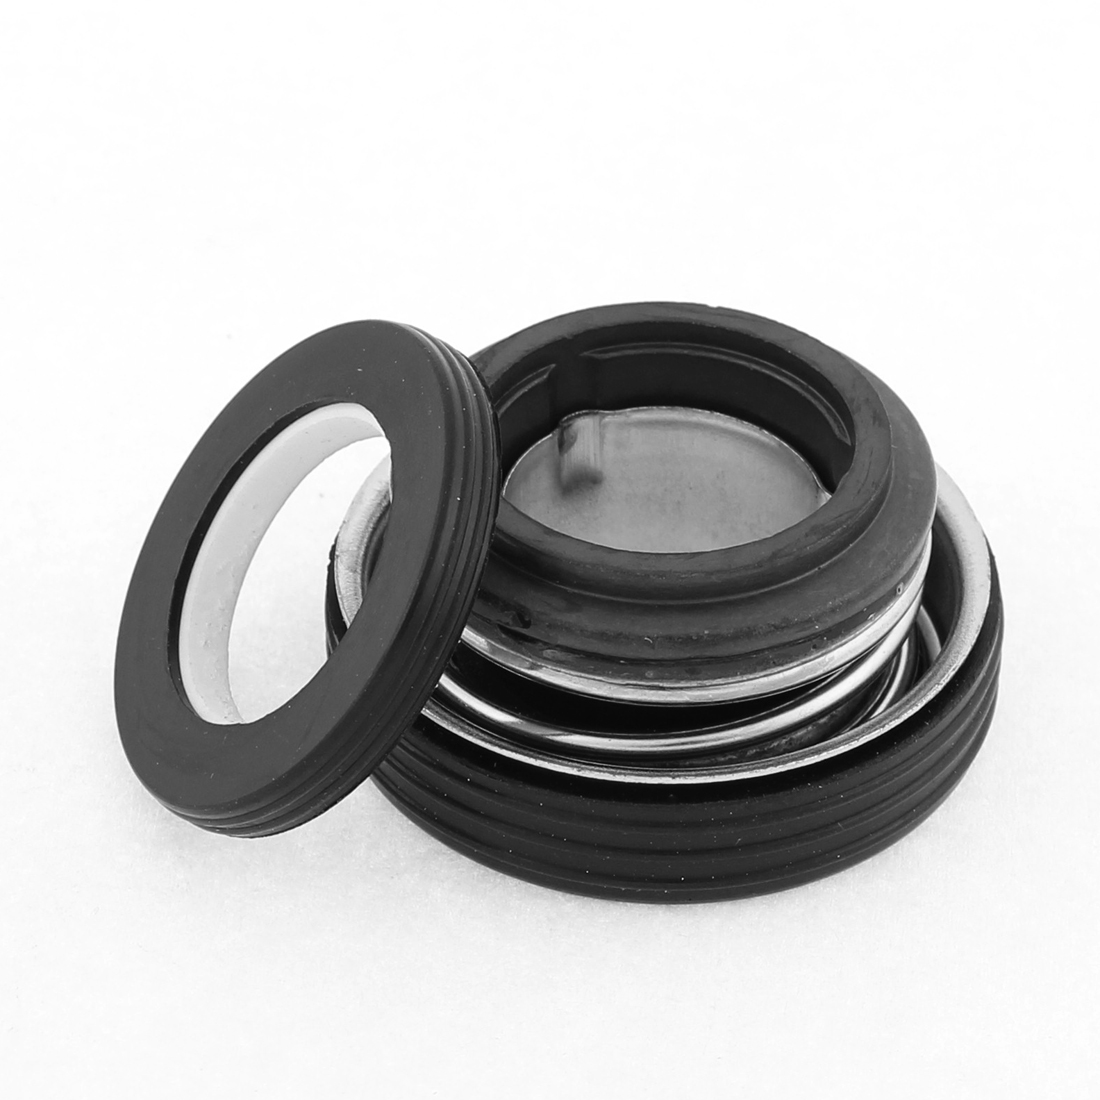 21mm Internal Diameter Ceramic Ring Single Spring Rubber Bellows Water Pump Shaft Mechanical Seal